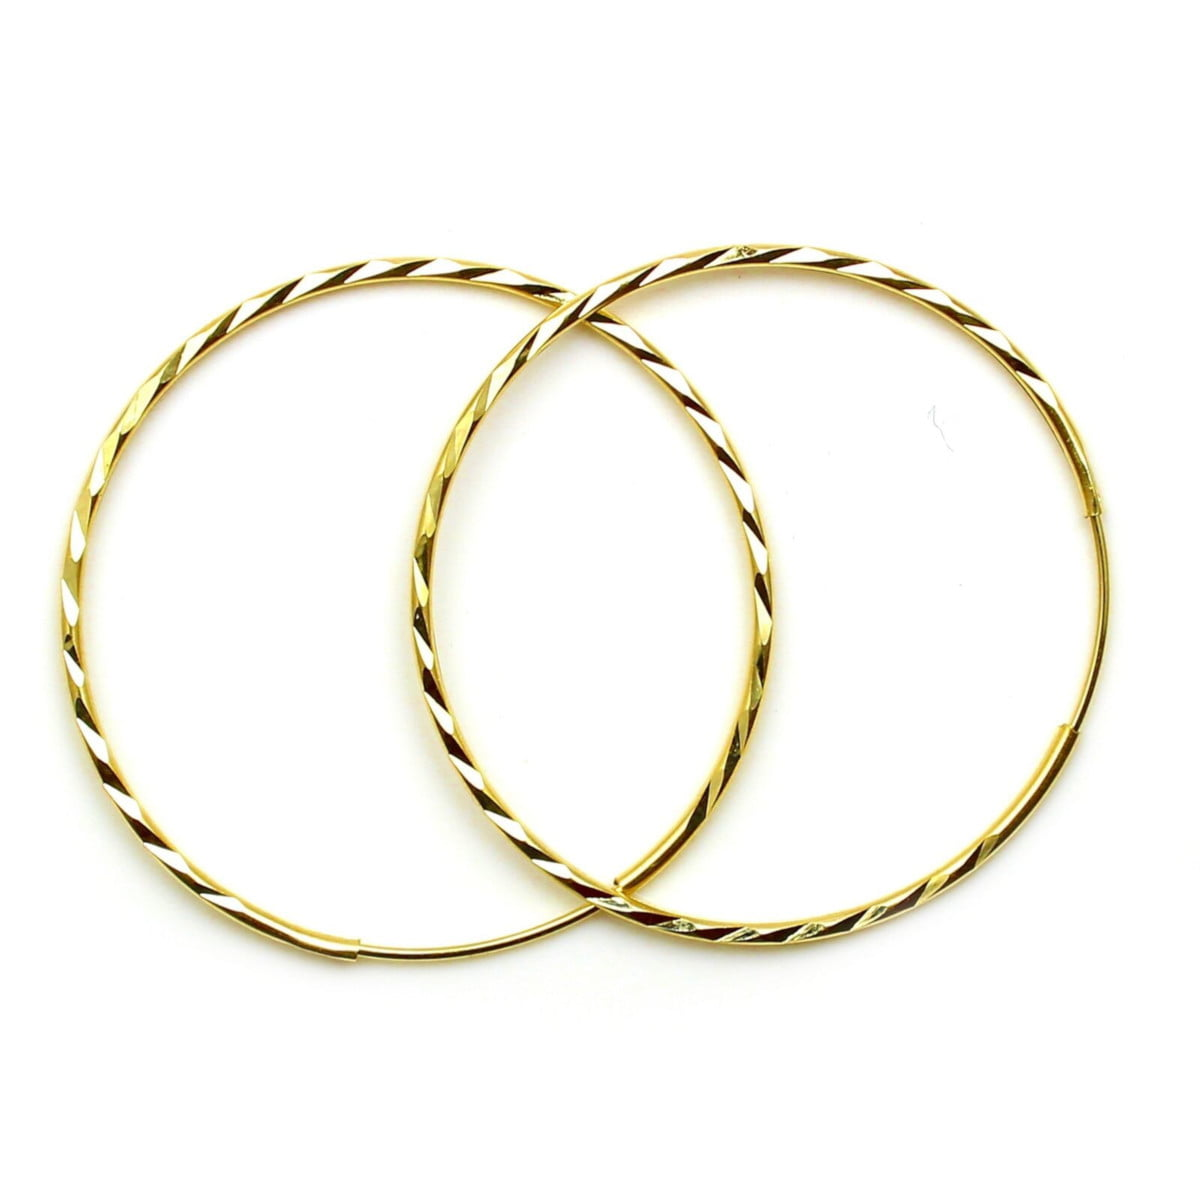 22 mm diamond cut sleeper hoops (1 pair) in 9ct yellow gold